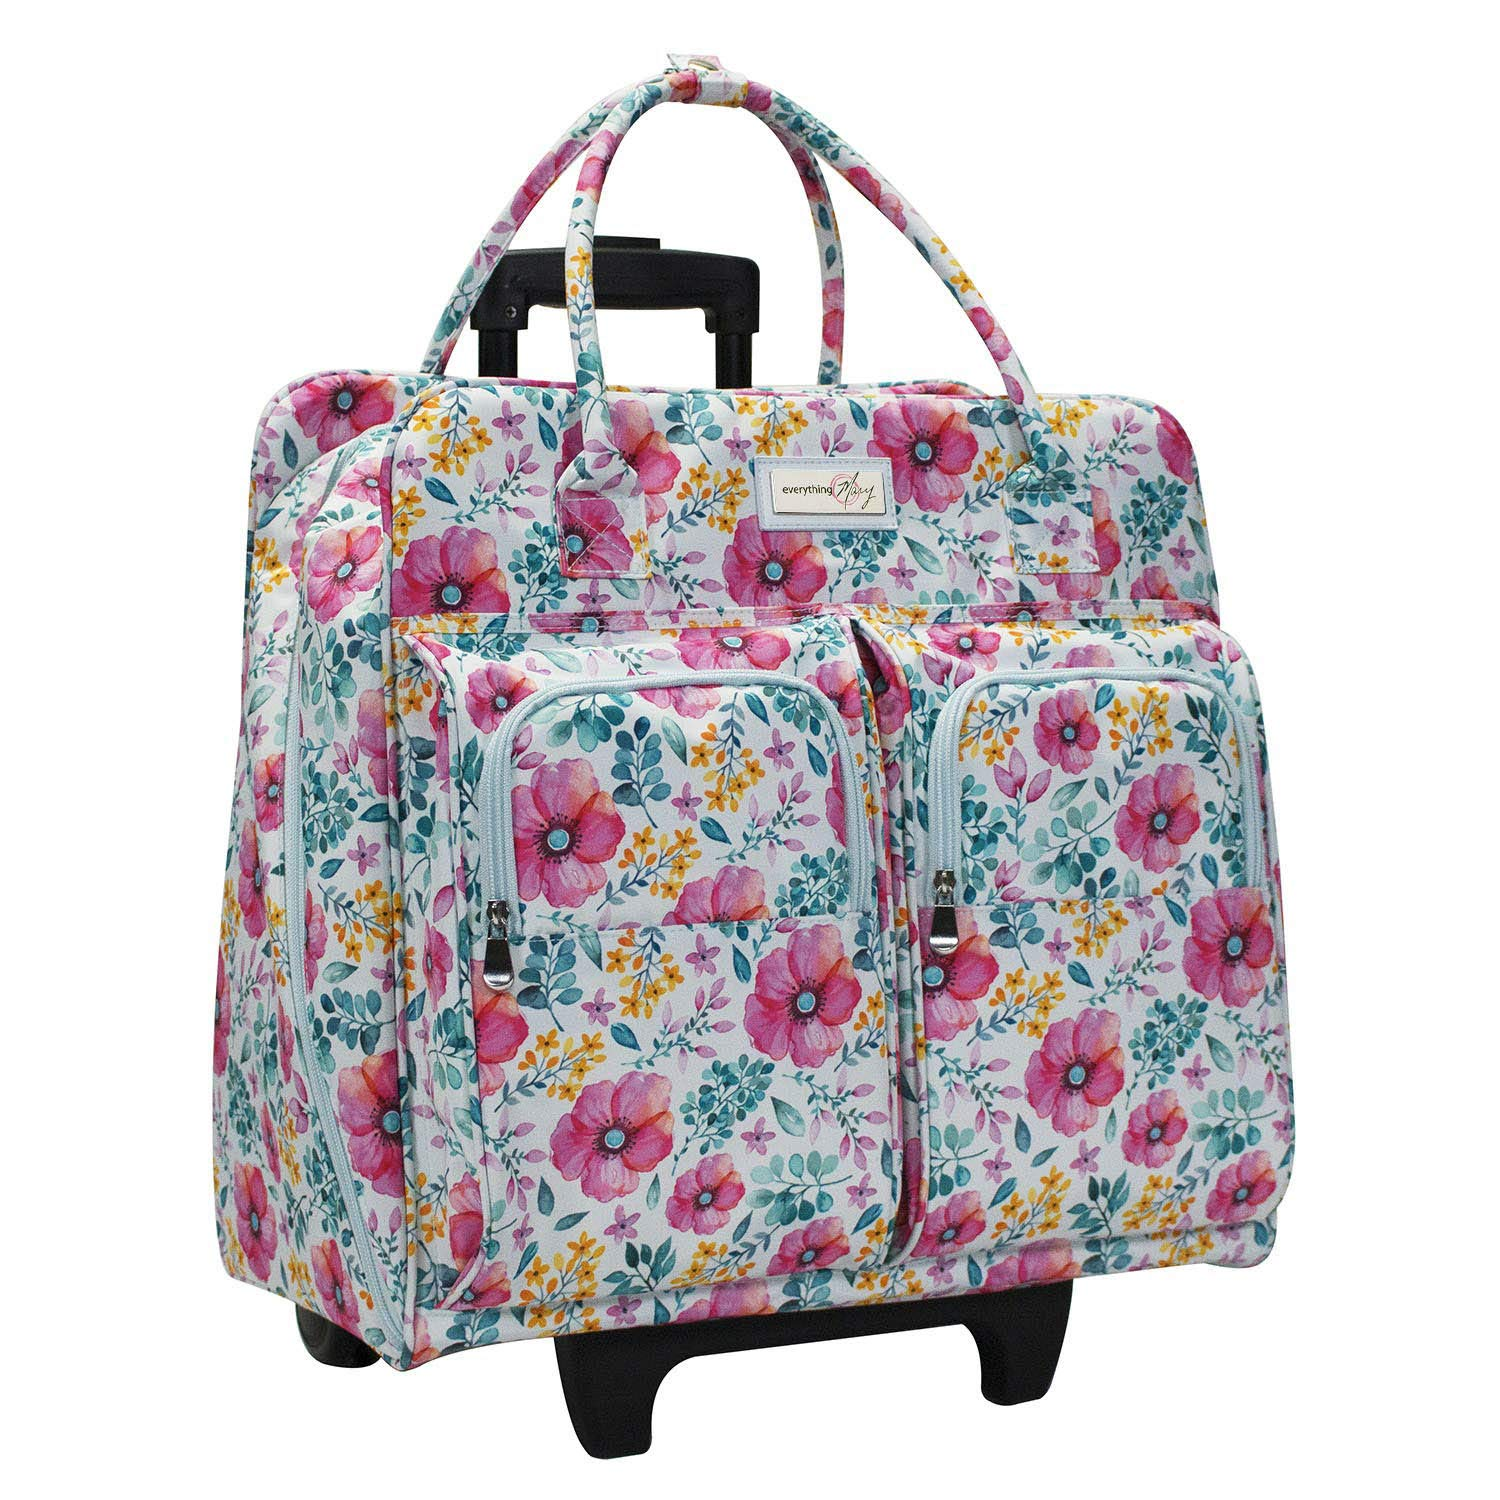 Everything Mary Deluxe Light Blue Floral Rolling Sewing Machine Case - Sewing Case Fits Most Brother & Singer Sewing Machines - Premium Teacher Rolling Travel Case for Teachers, Students, School by Everything Mary